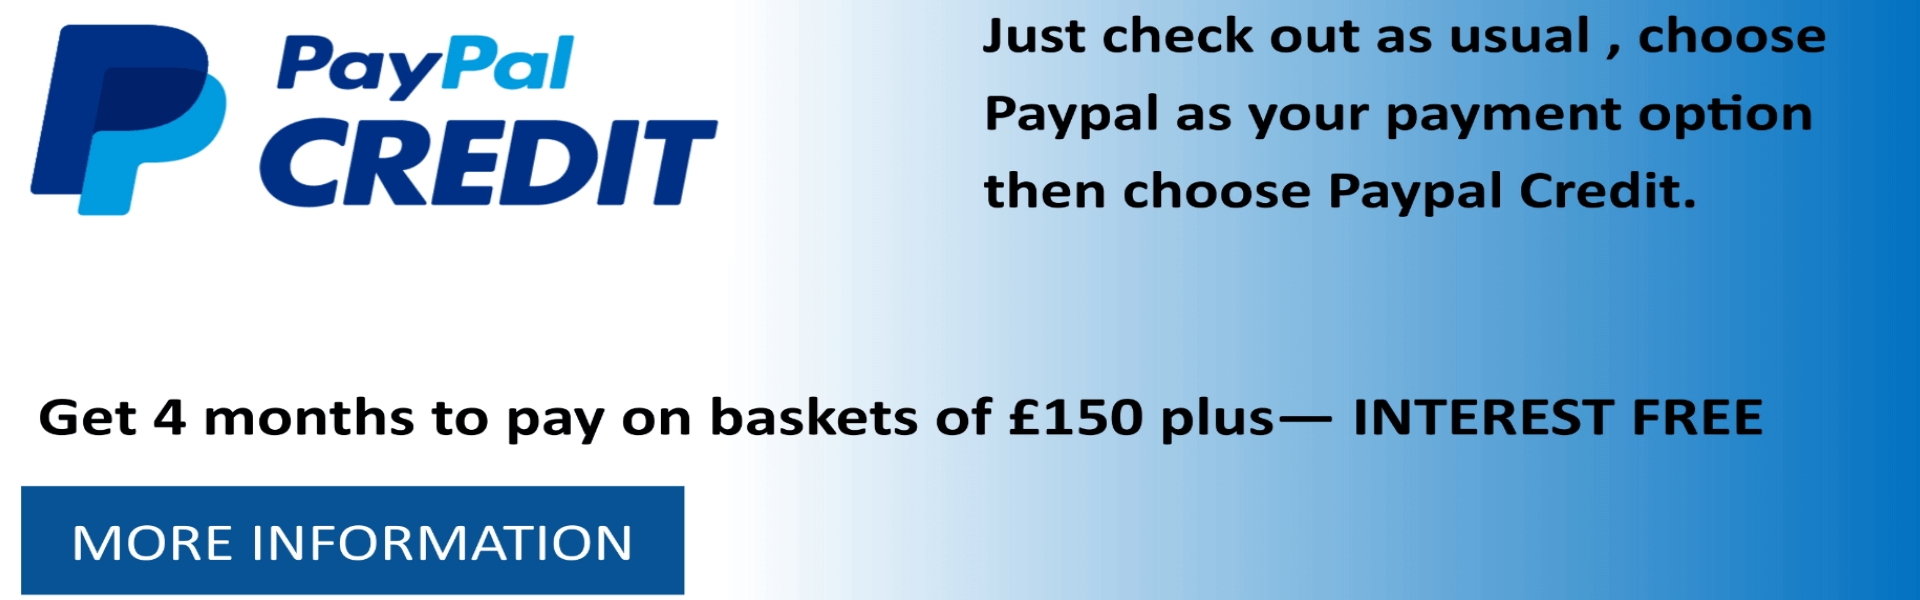 paypal credit finance